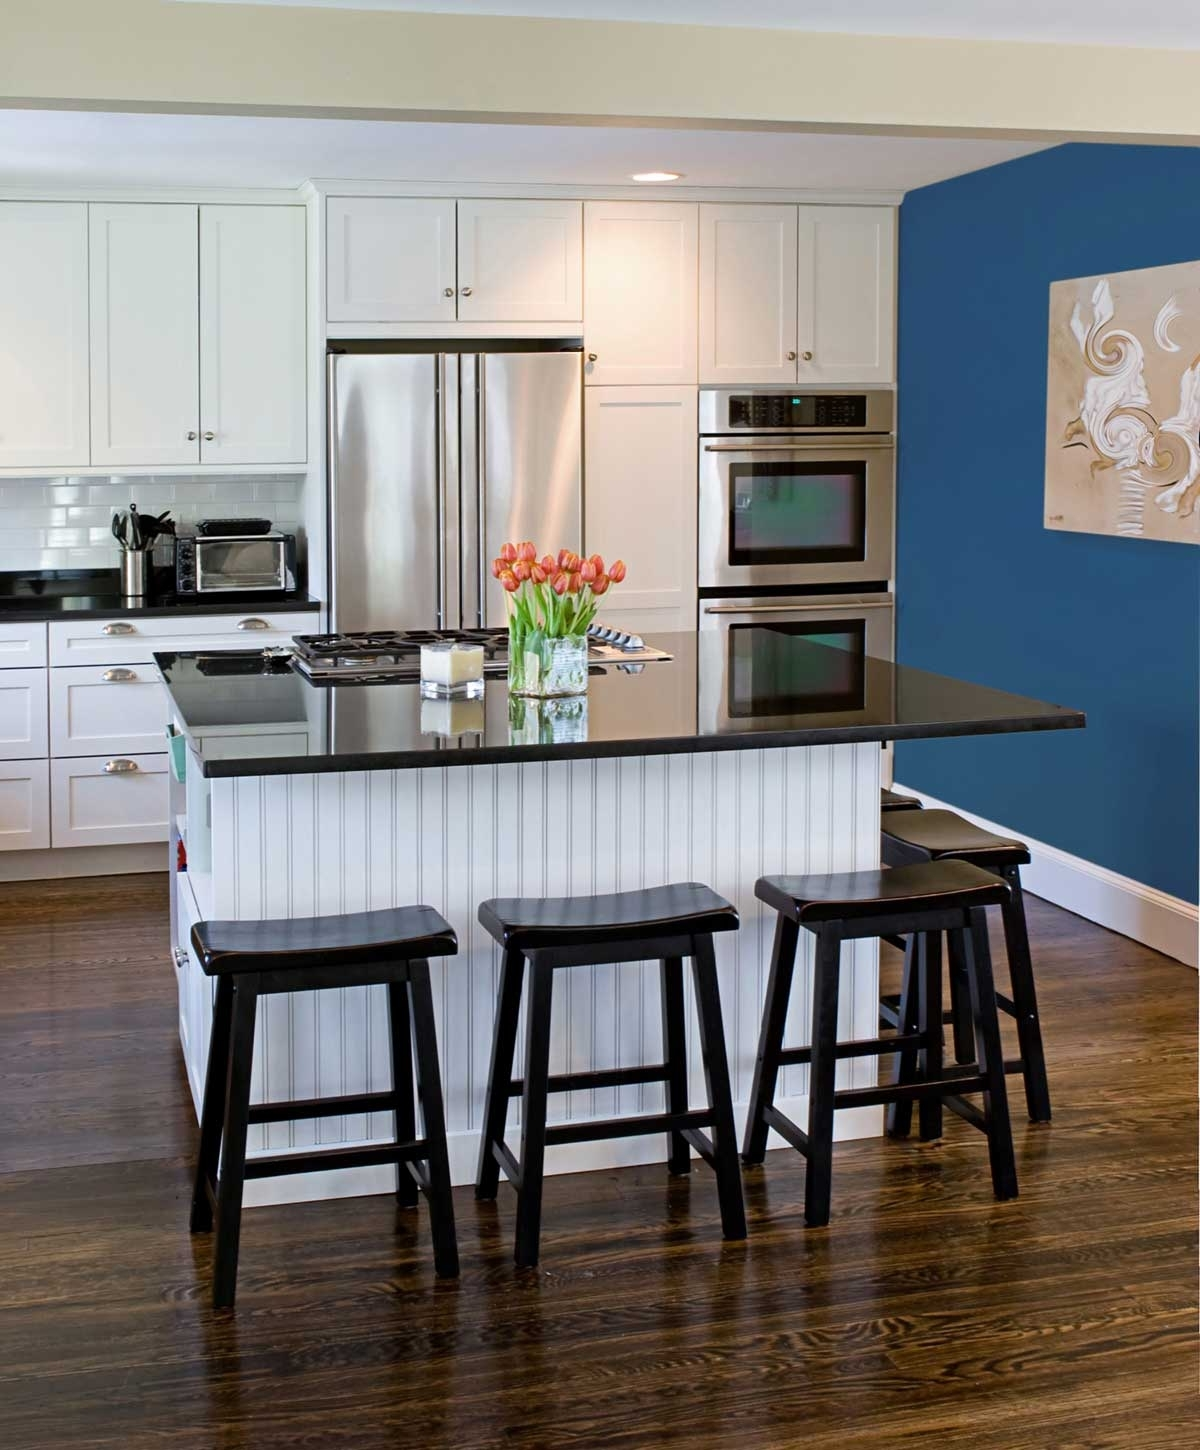 Wonderful Orange Accents Kitchen Design With Blue Wall (View 15 of 15)